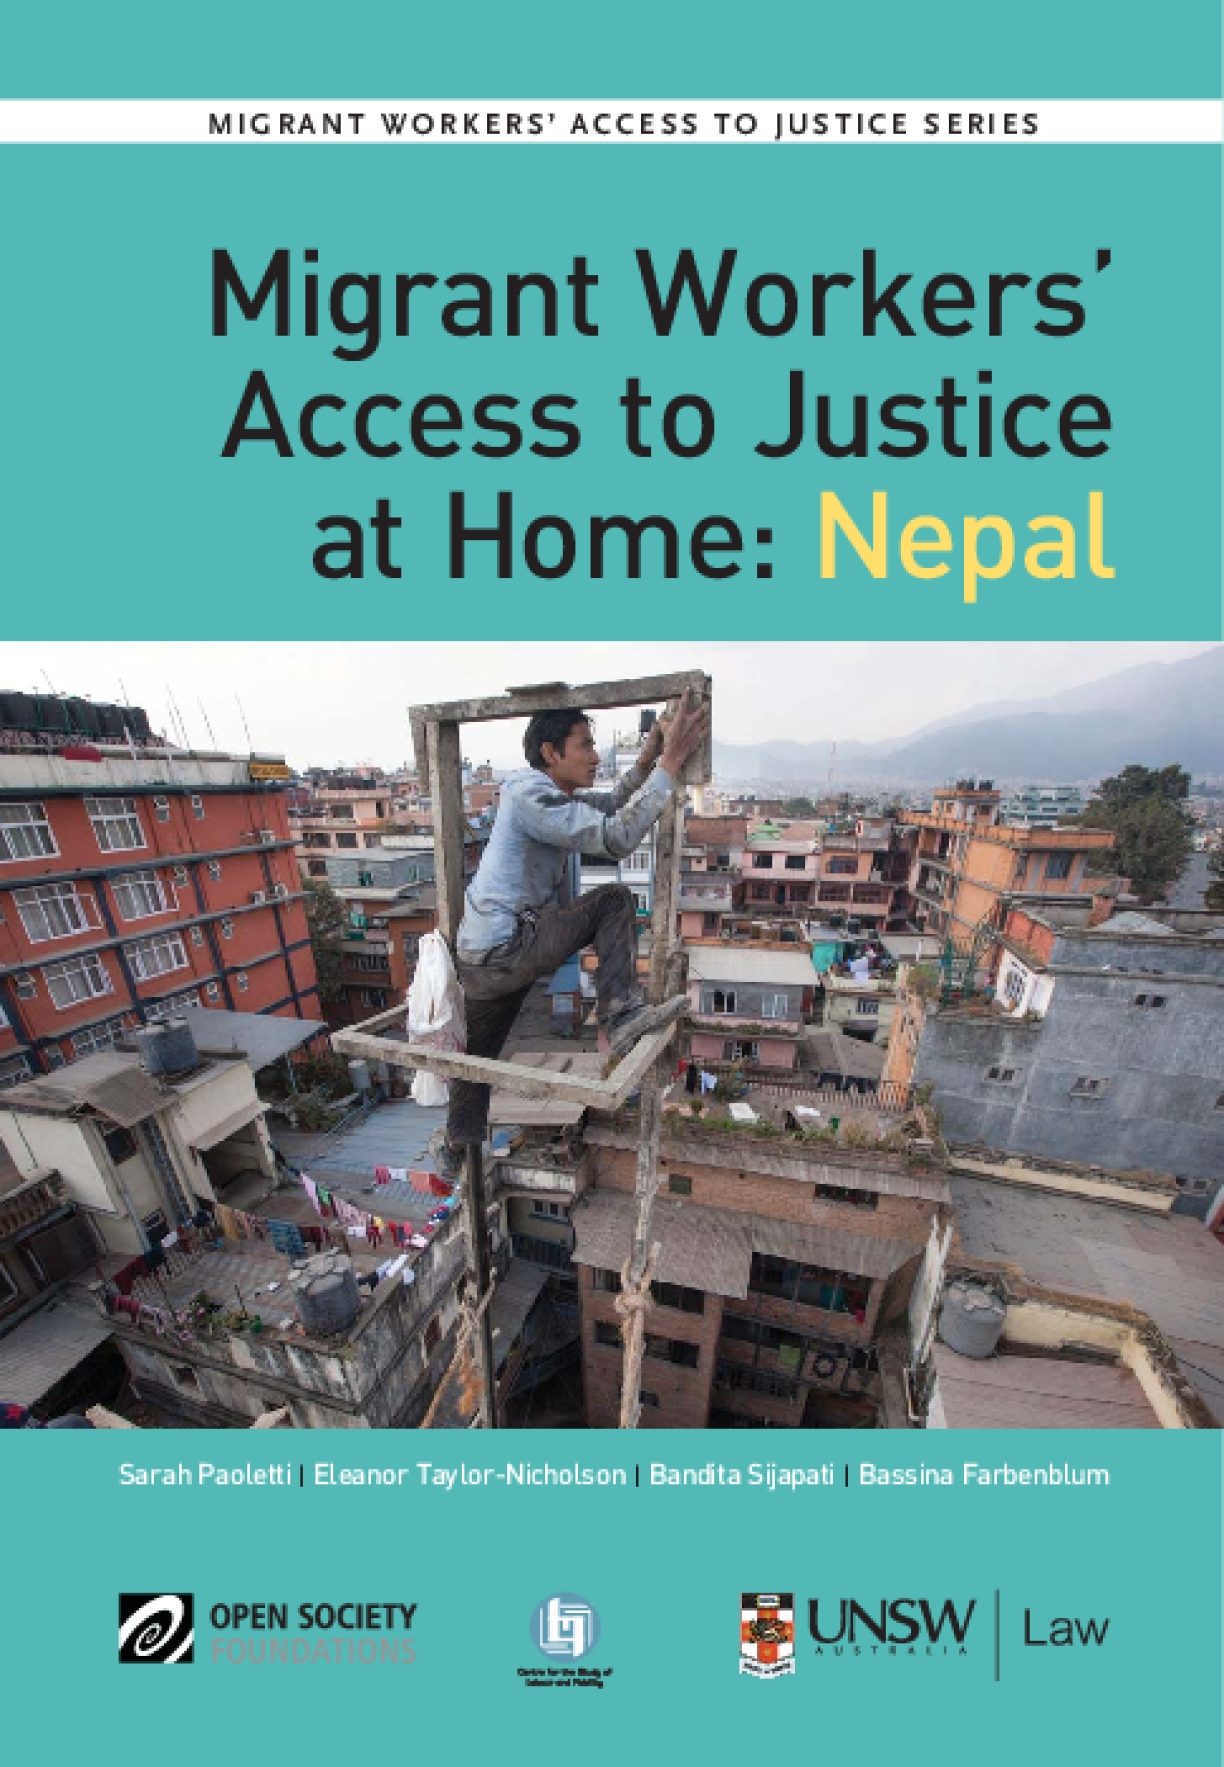 Migrant Workers' Access to Justice at Home: Nepal